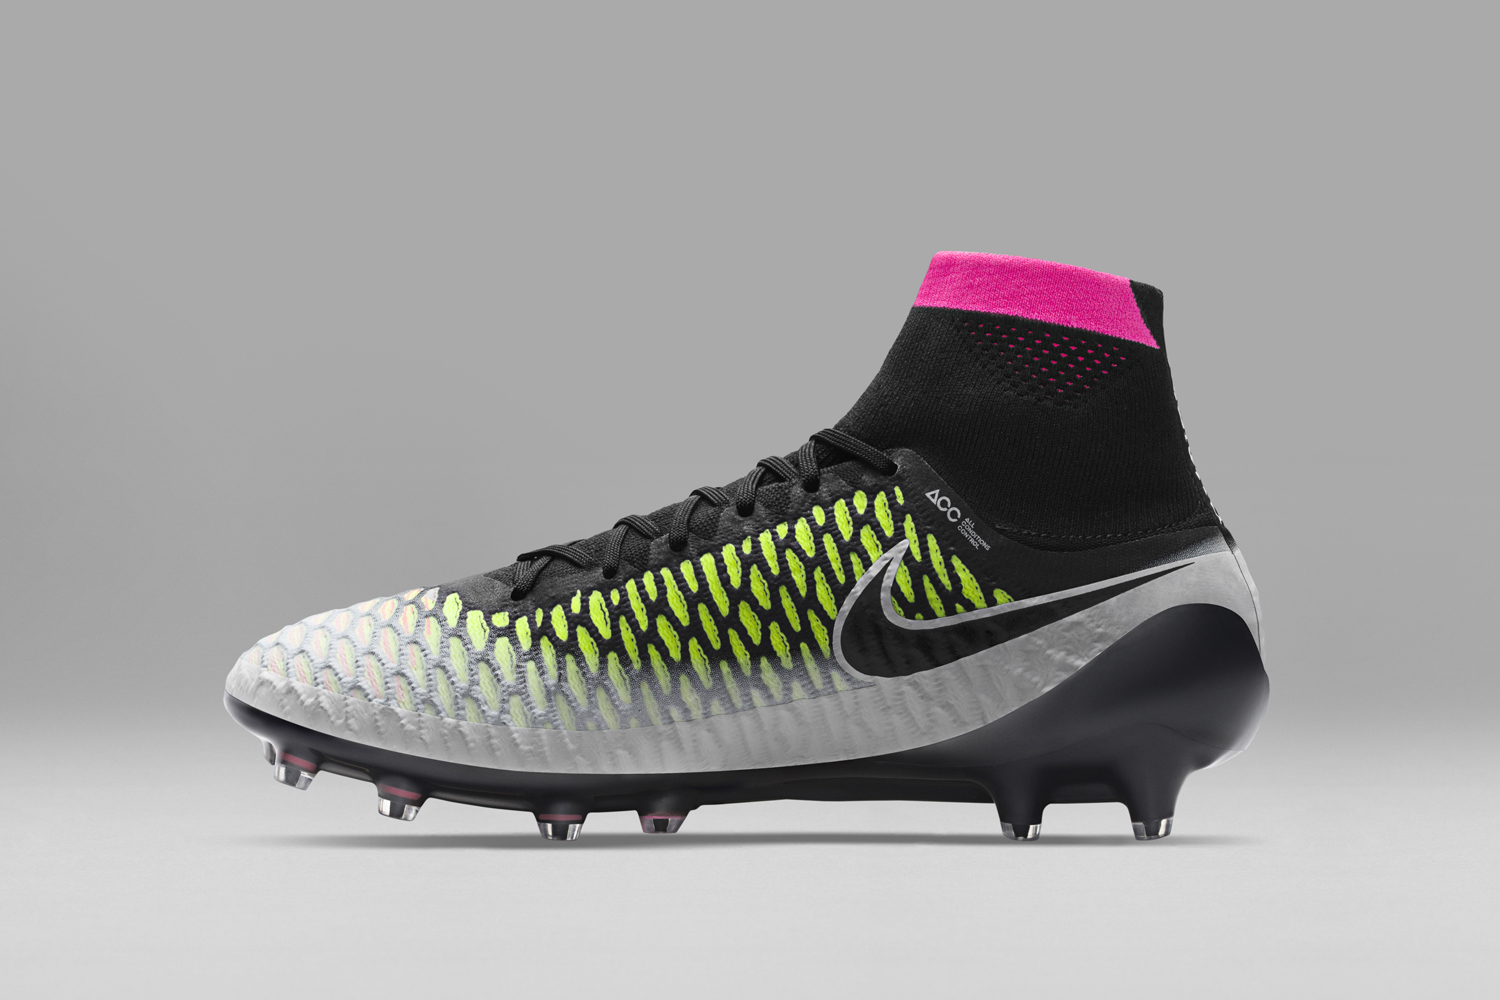 SU16_FB_Radiant_Reveal_Pack_Magista_Obra_FG_C_53014